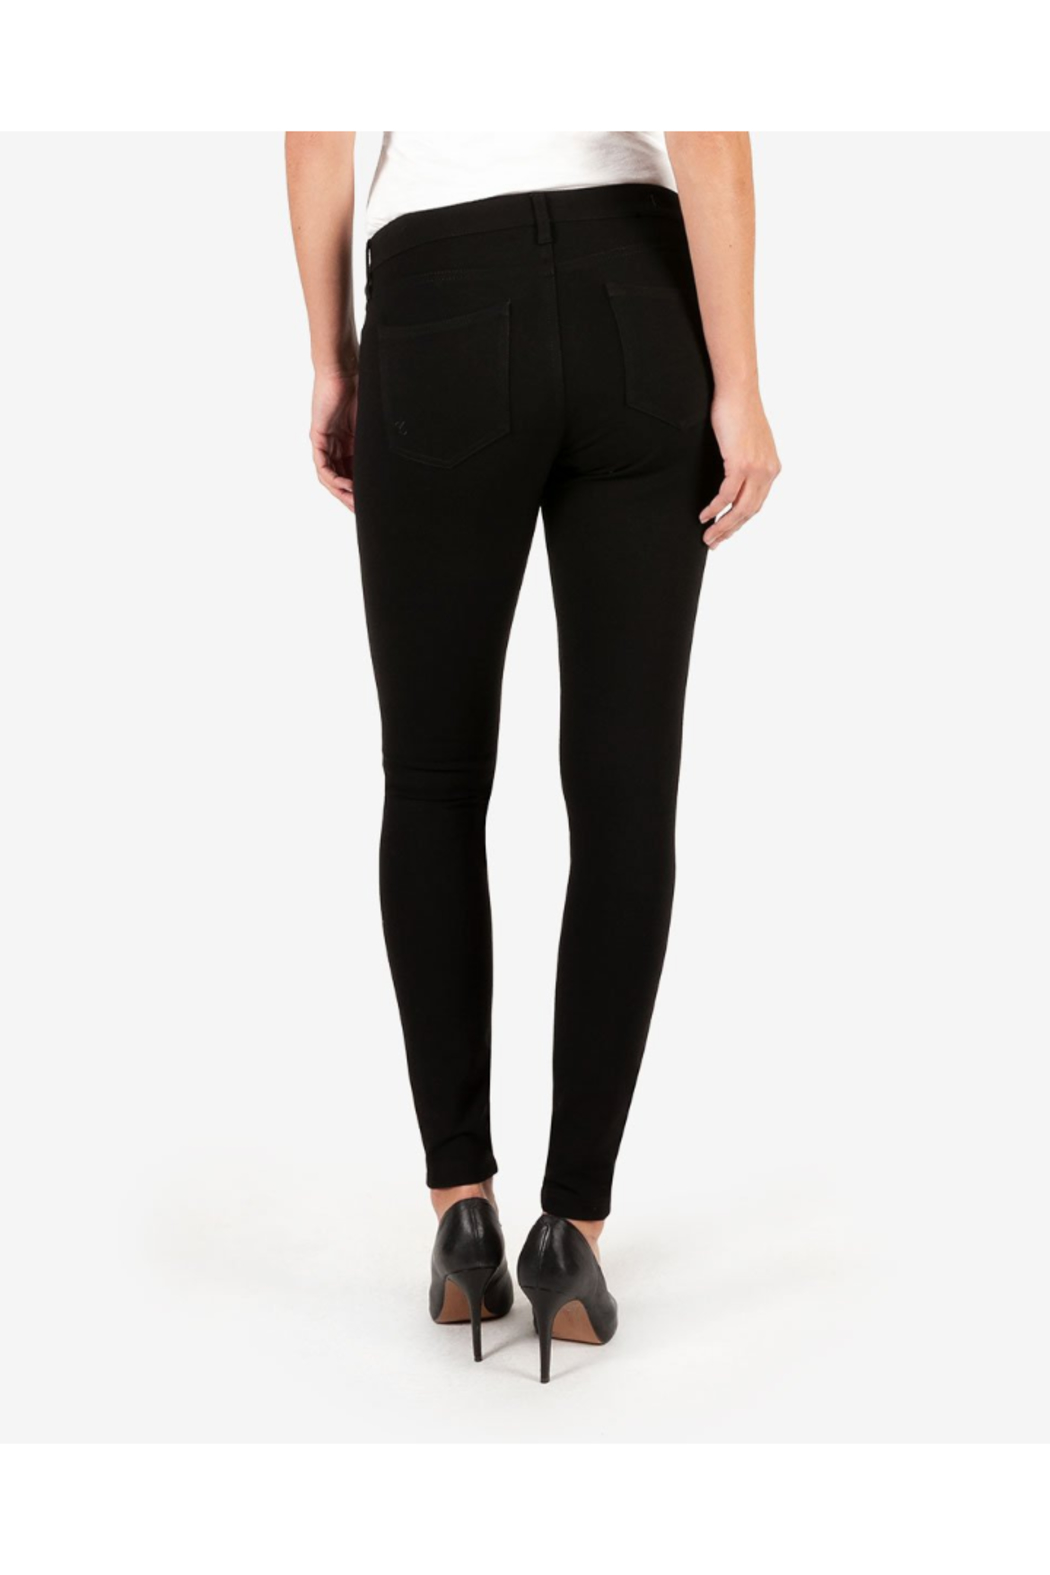 Kut from the Kloth MIA PONTE SLIM FIT SKINNY - Back Cropped Image